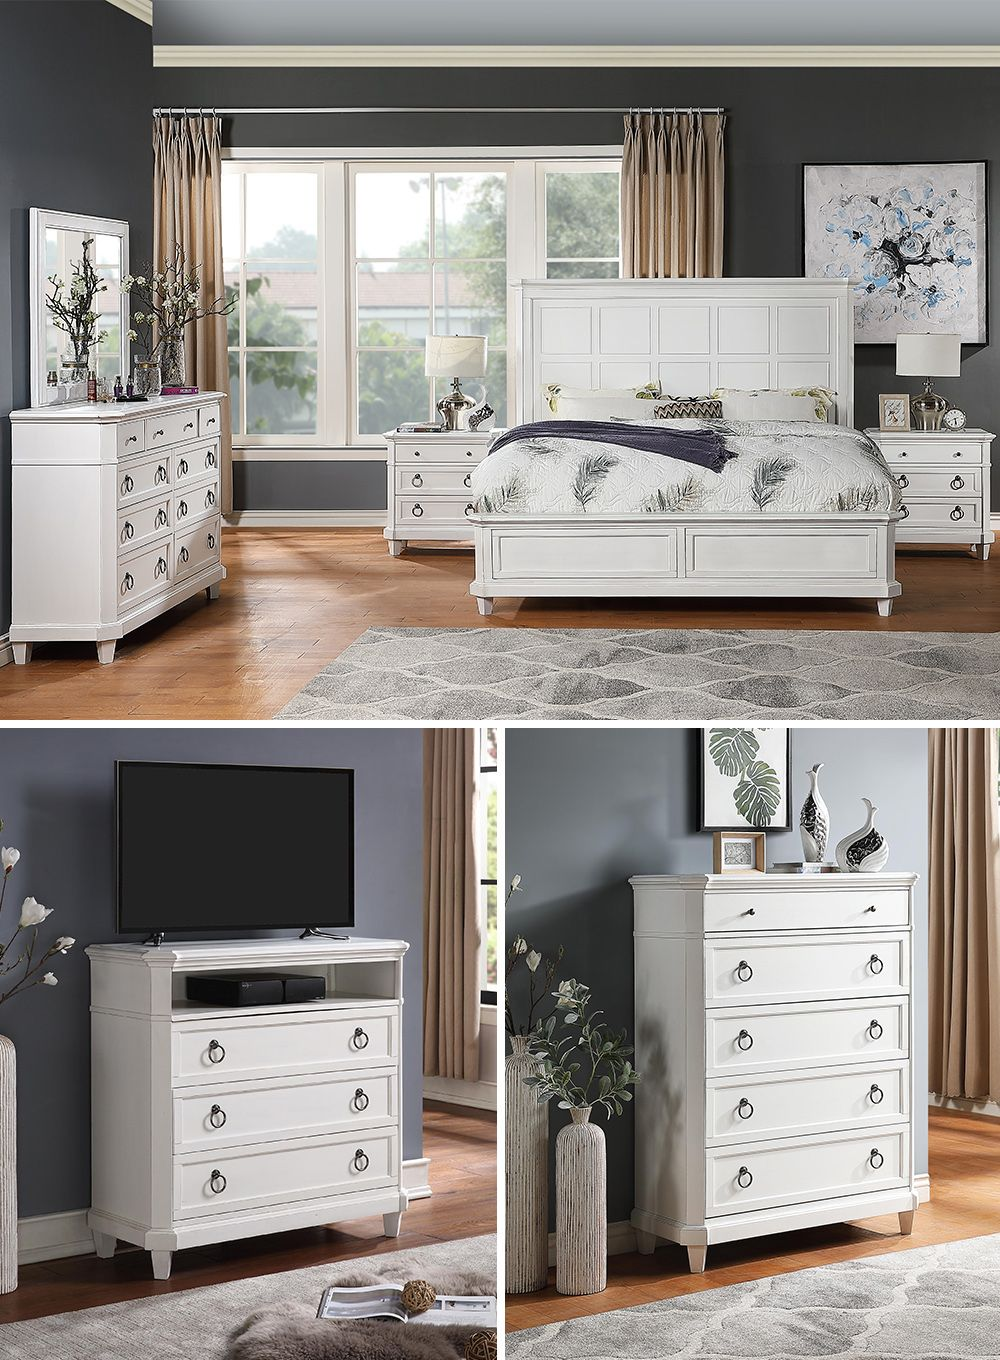 The Augusta Panel Bedroom Set Is A Great Choice With Its Sleek Design Complemented By Geometry Focused D In 2020 Bedroom Furniture Sets Bedroom Panel Bedroom